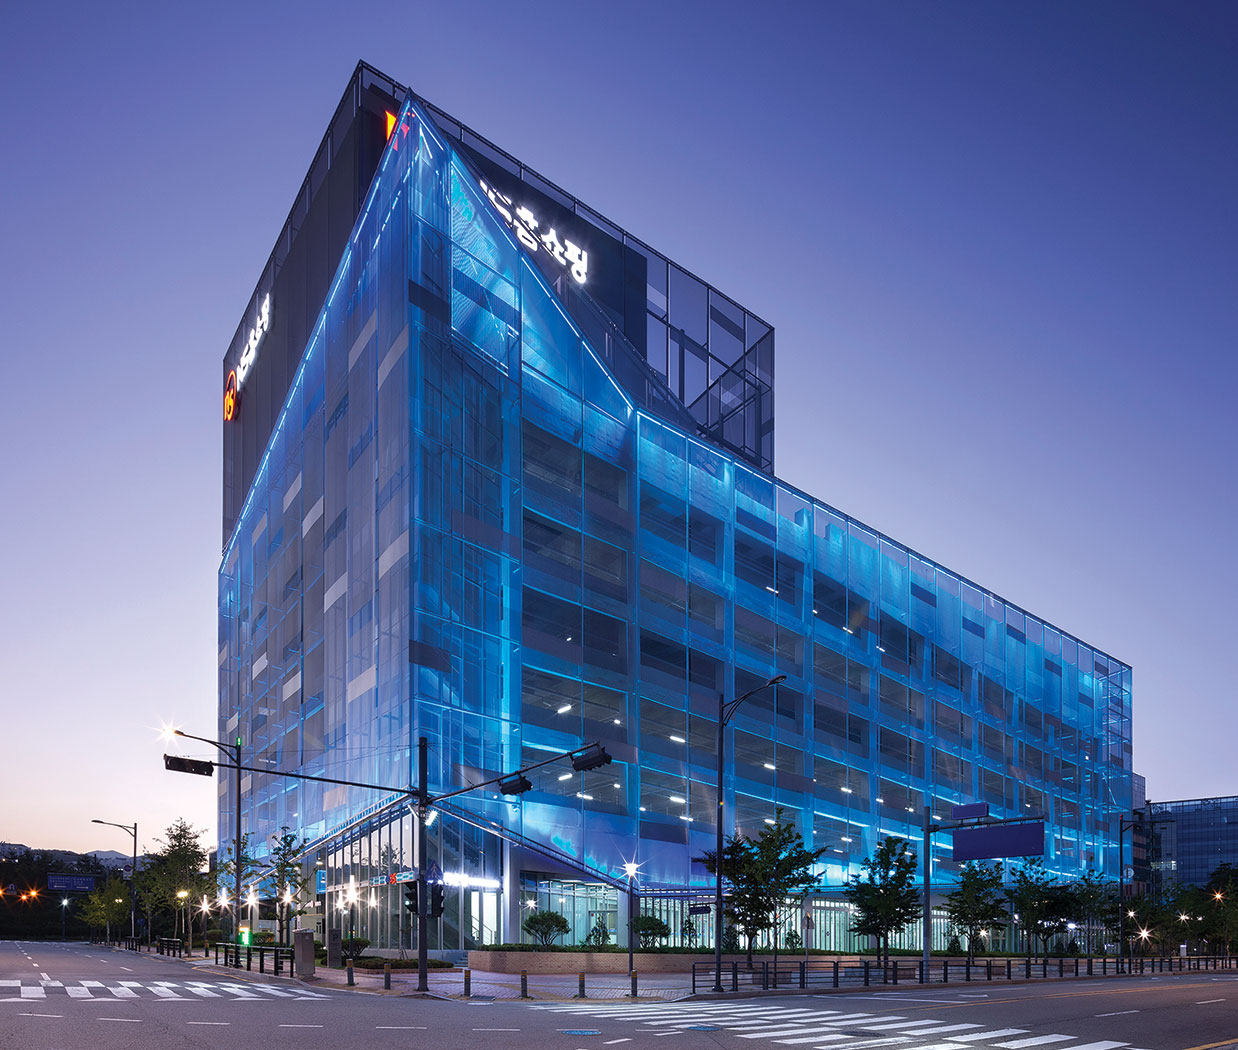 Large hotel in Korea built by Beck Group